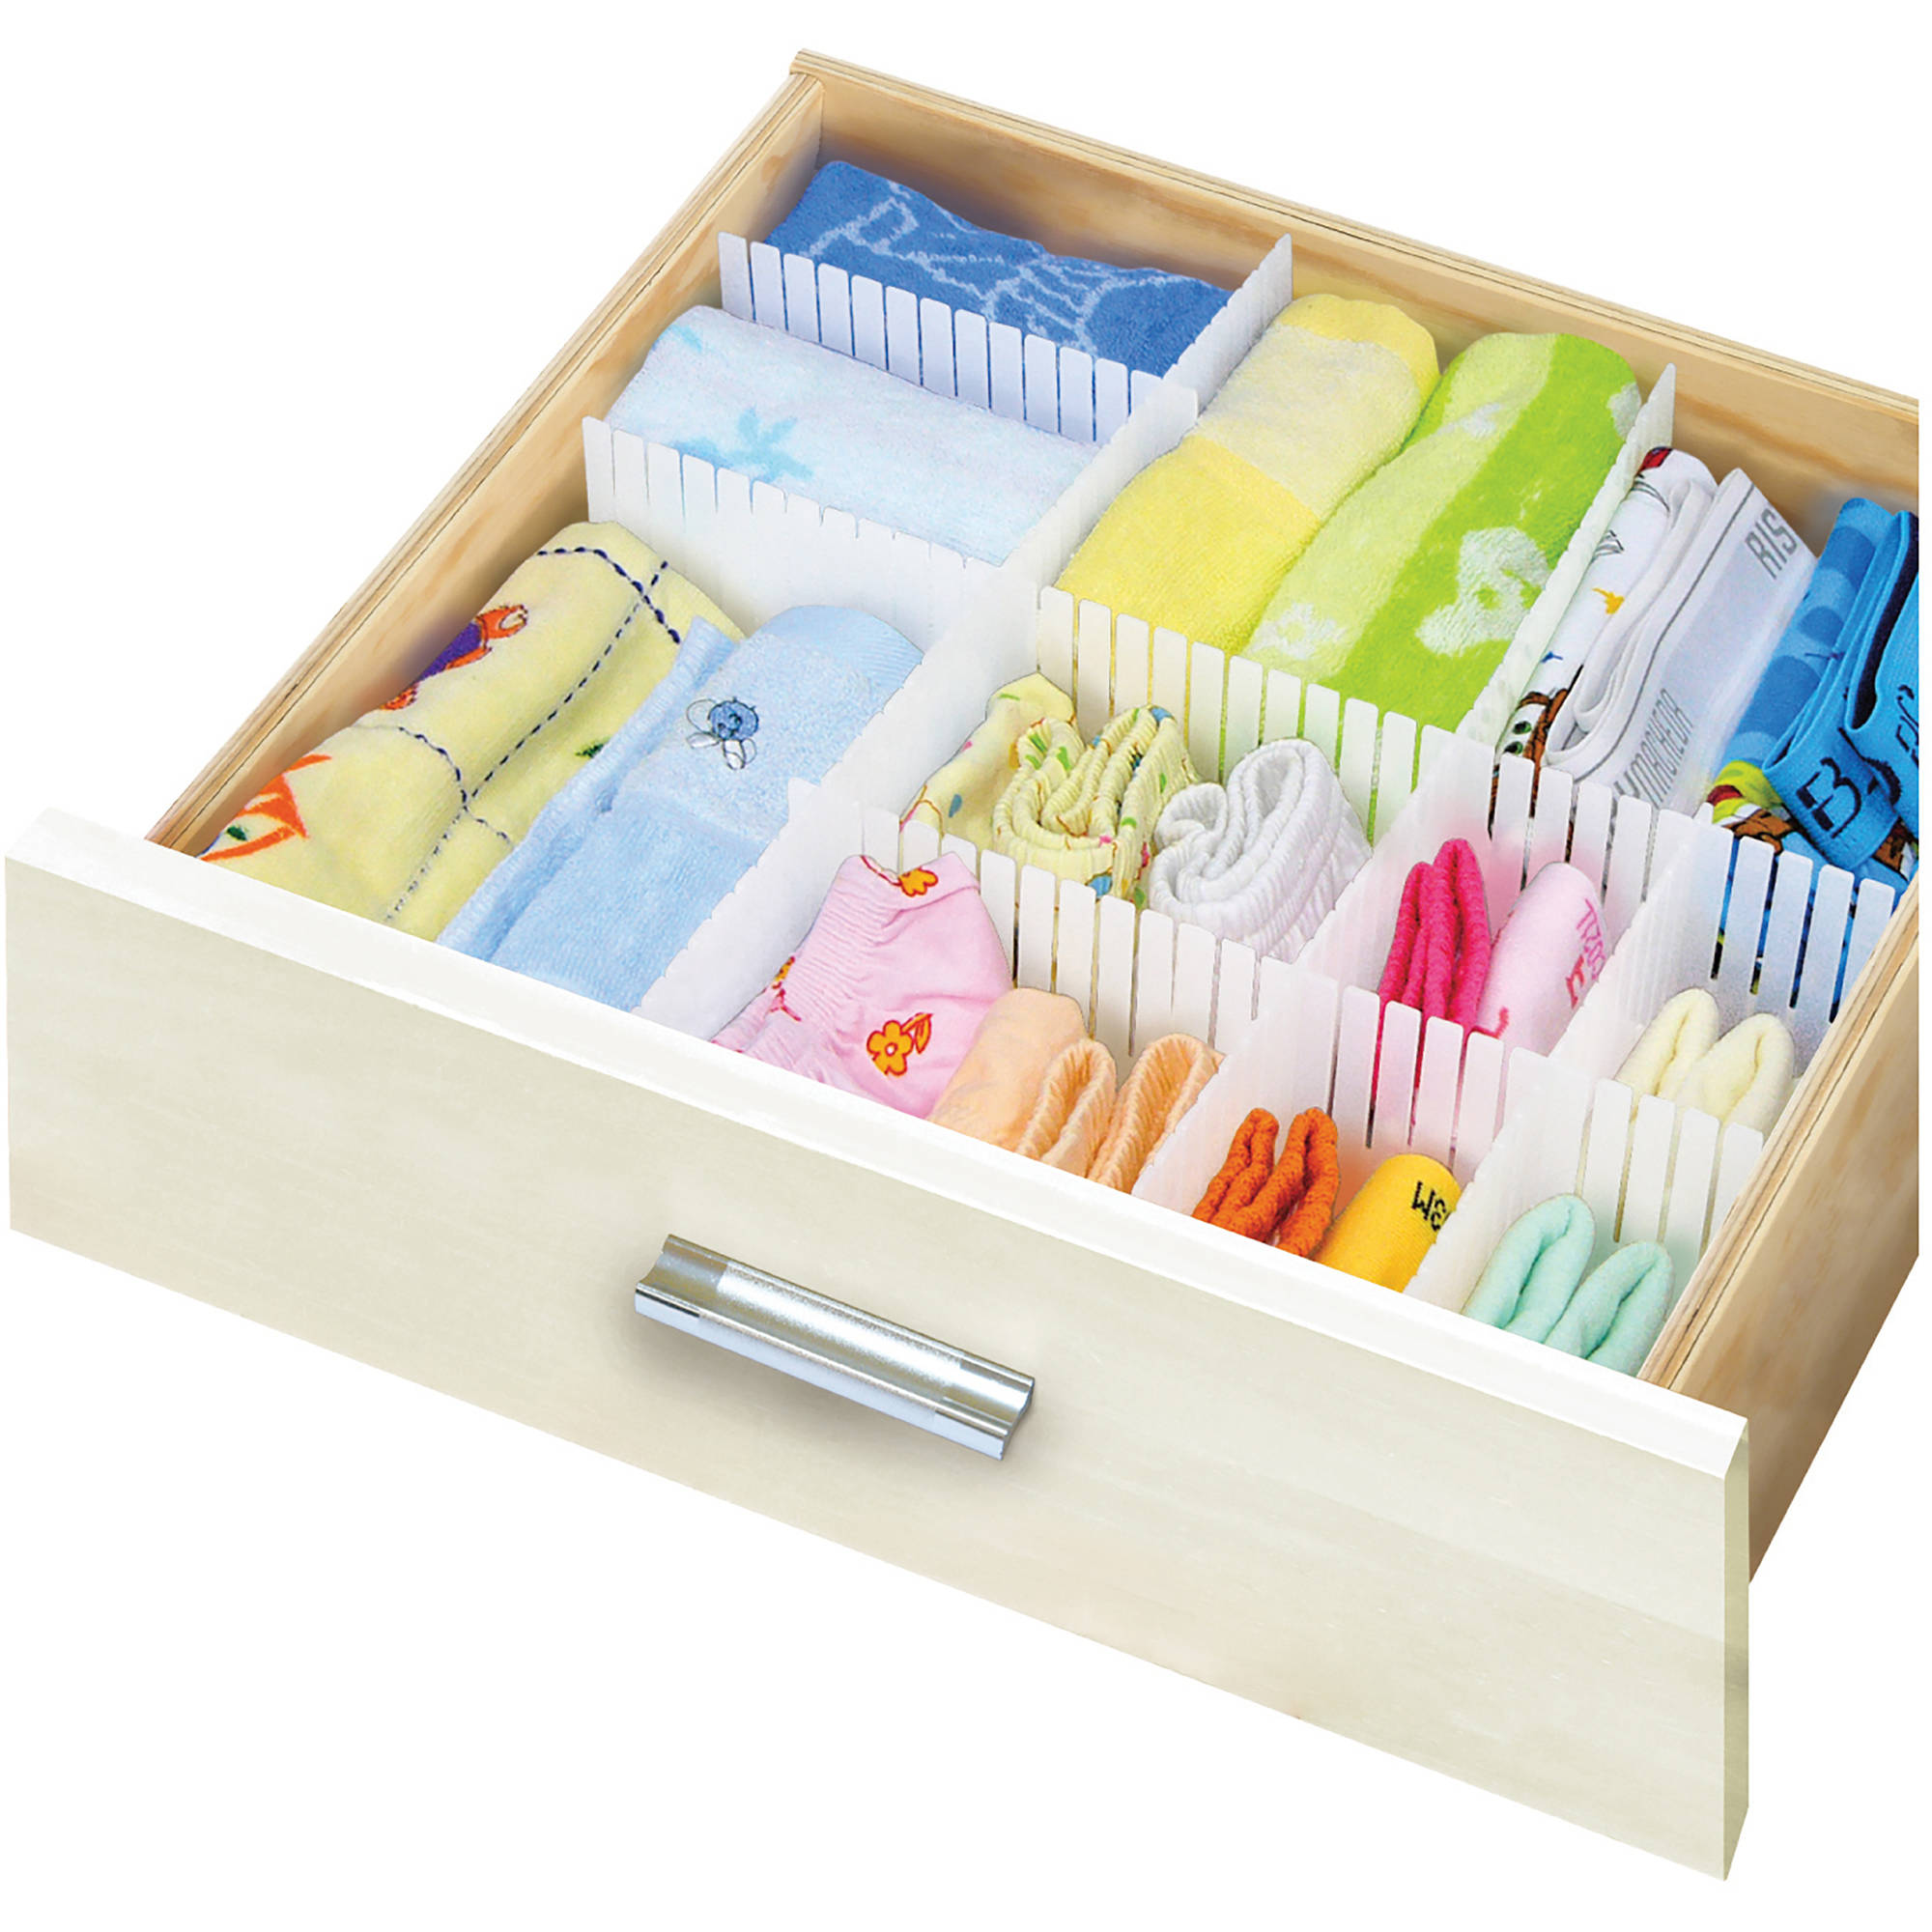 Simplify Drawer Organizer, Set of 3